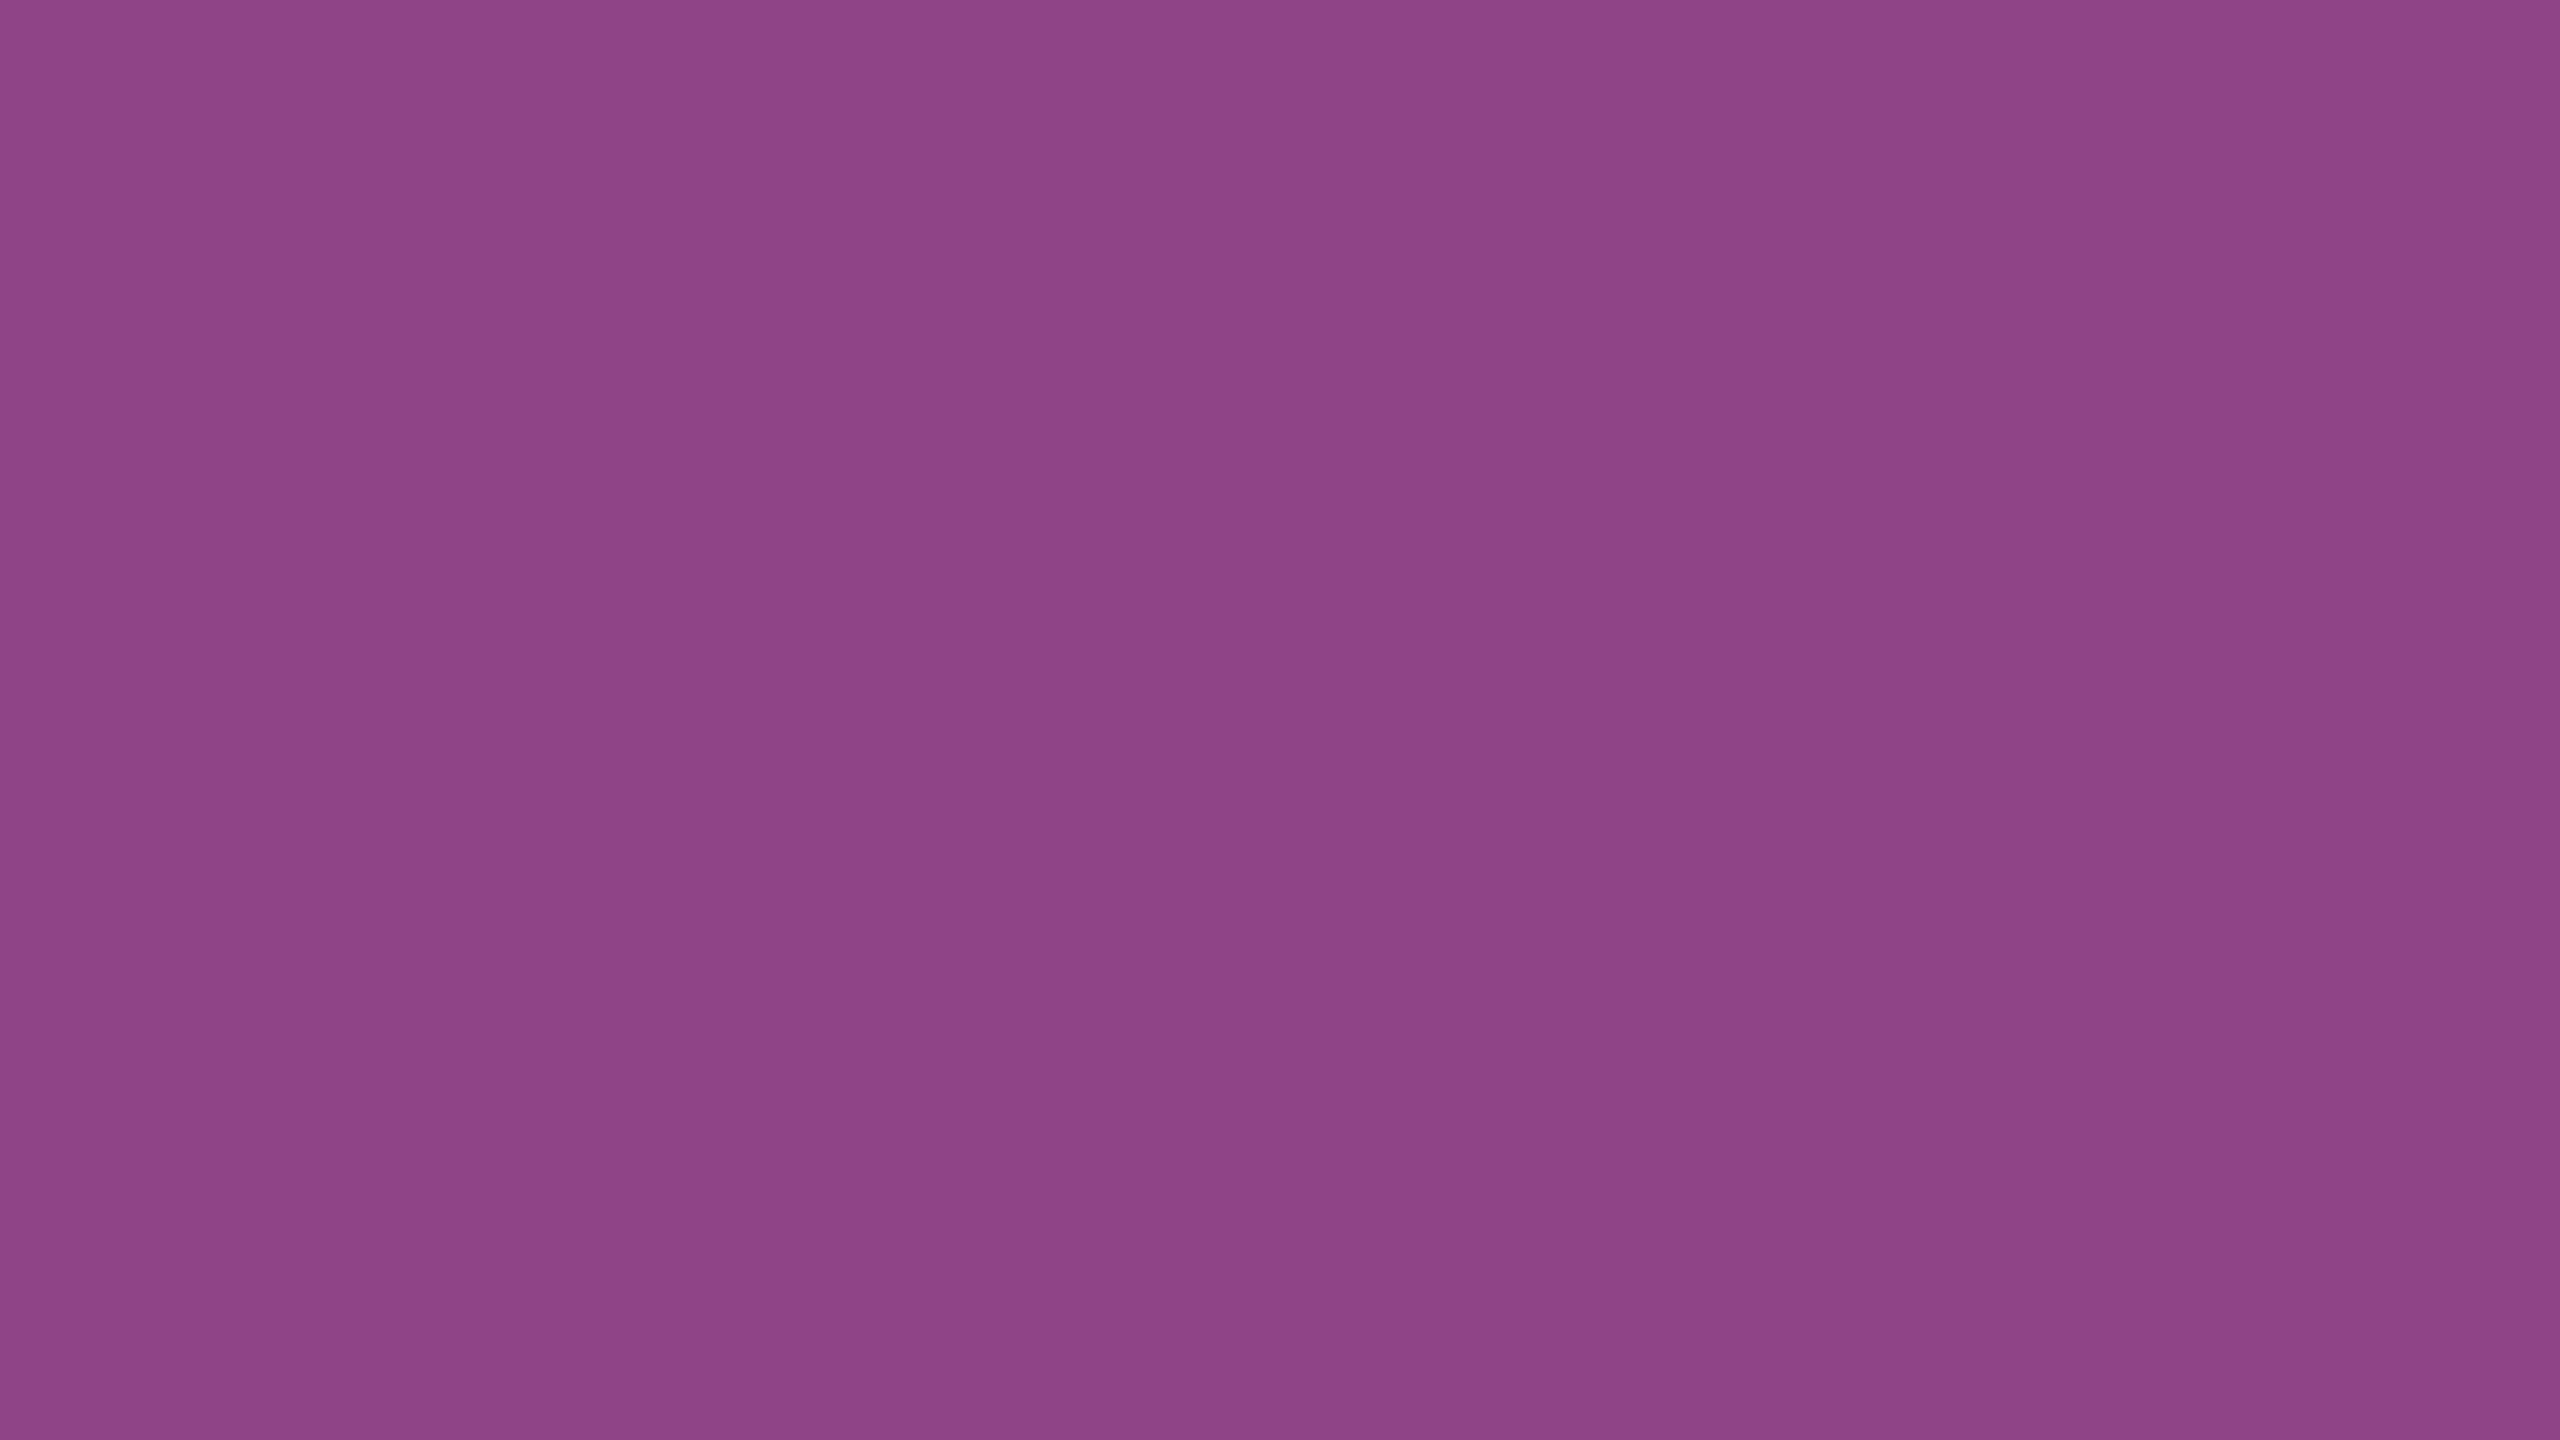 2560x1440 Plum Traditional Solid Color Background 2560x1440